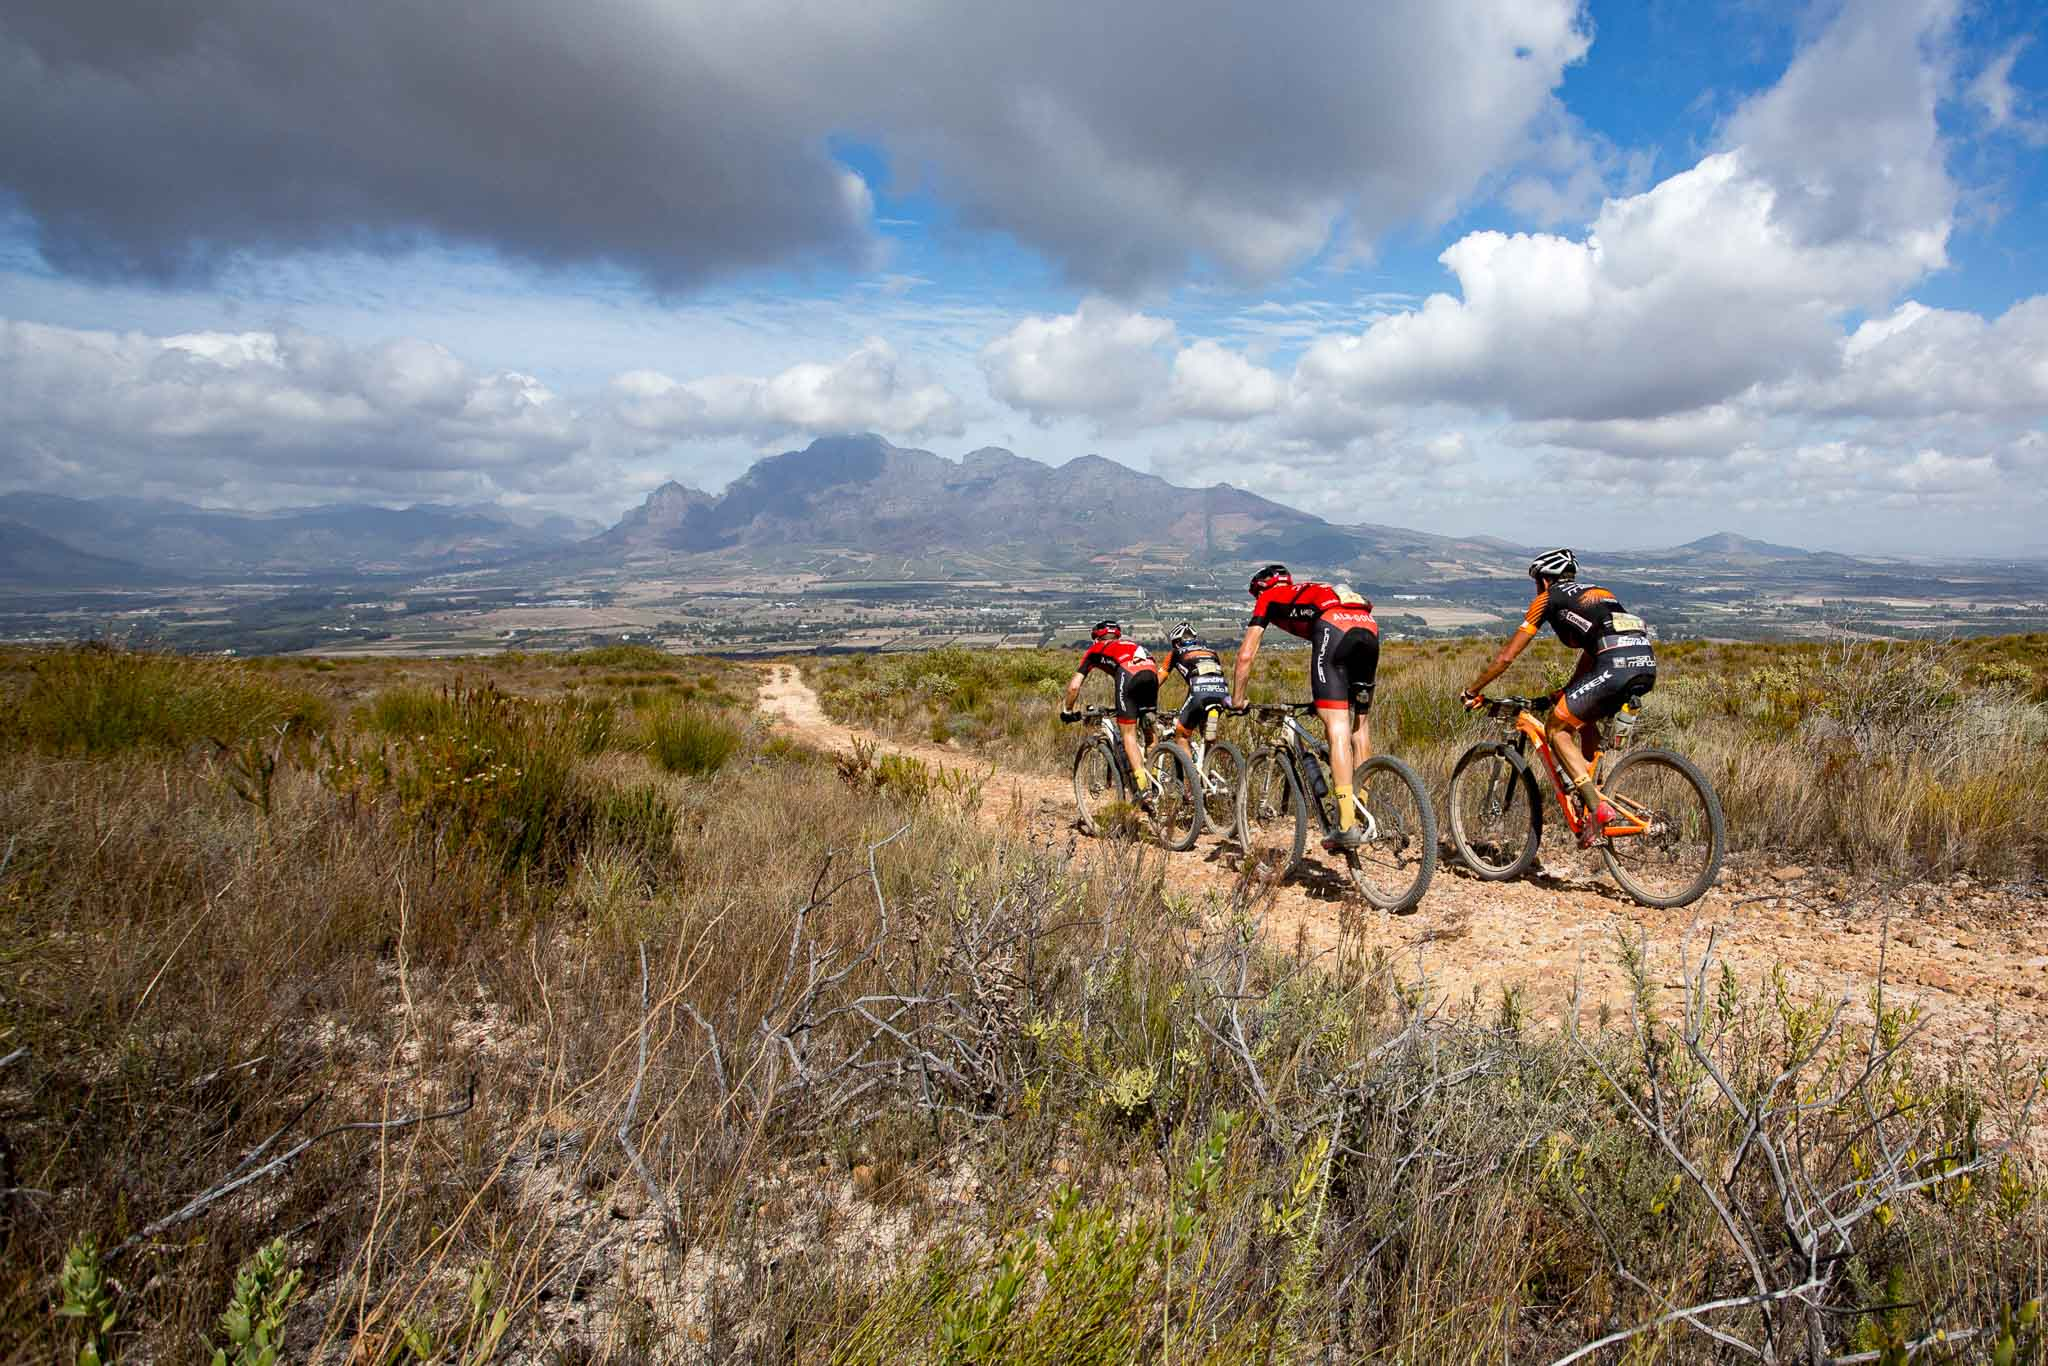 The chasing group of Trek Selle San Marco B and Centurian Vaude A during stage 5 of the 2016 Absa Cape Epic Mountain Bike stage race held from the Cape Peninsula University of Technology in Wellington to Boschendal in Stellenbosch, South Africa on the 18th March 2016 Photo by Nick Muzik/Cape Epic/SPORTZPICS PLEASE ENSURE THE APPROPRIATE CREDIT IS GIVEN TO THE PHOTOGRAPHER AND SPORTZPICS ALONG WITH THE ABSA CAPE EPIC ace2016